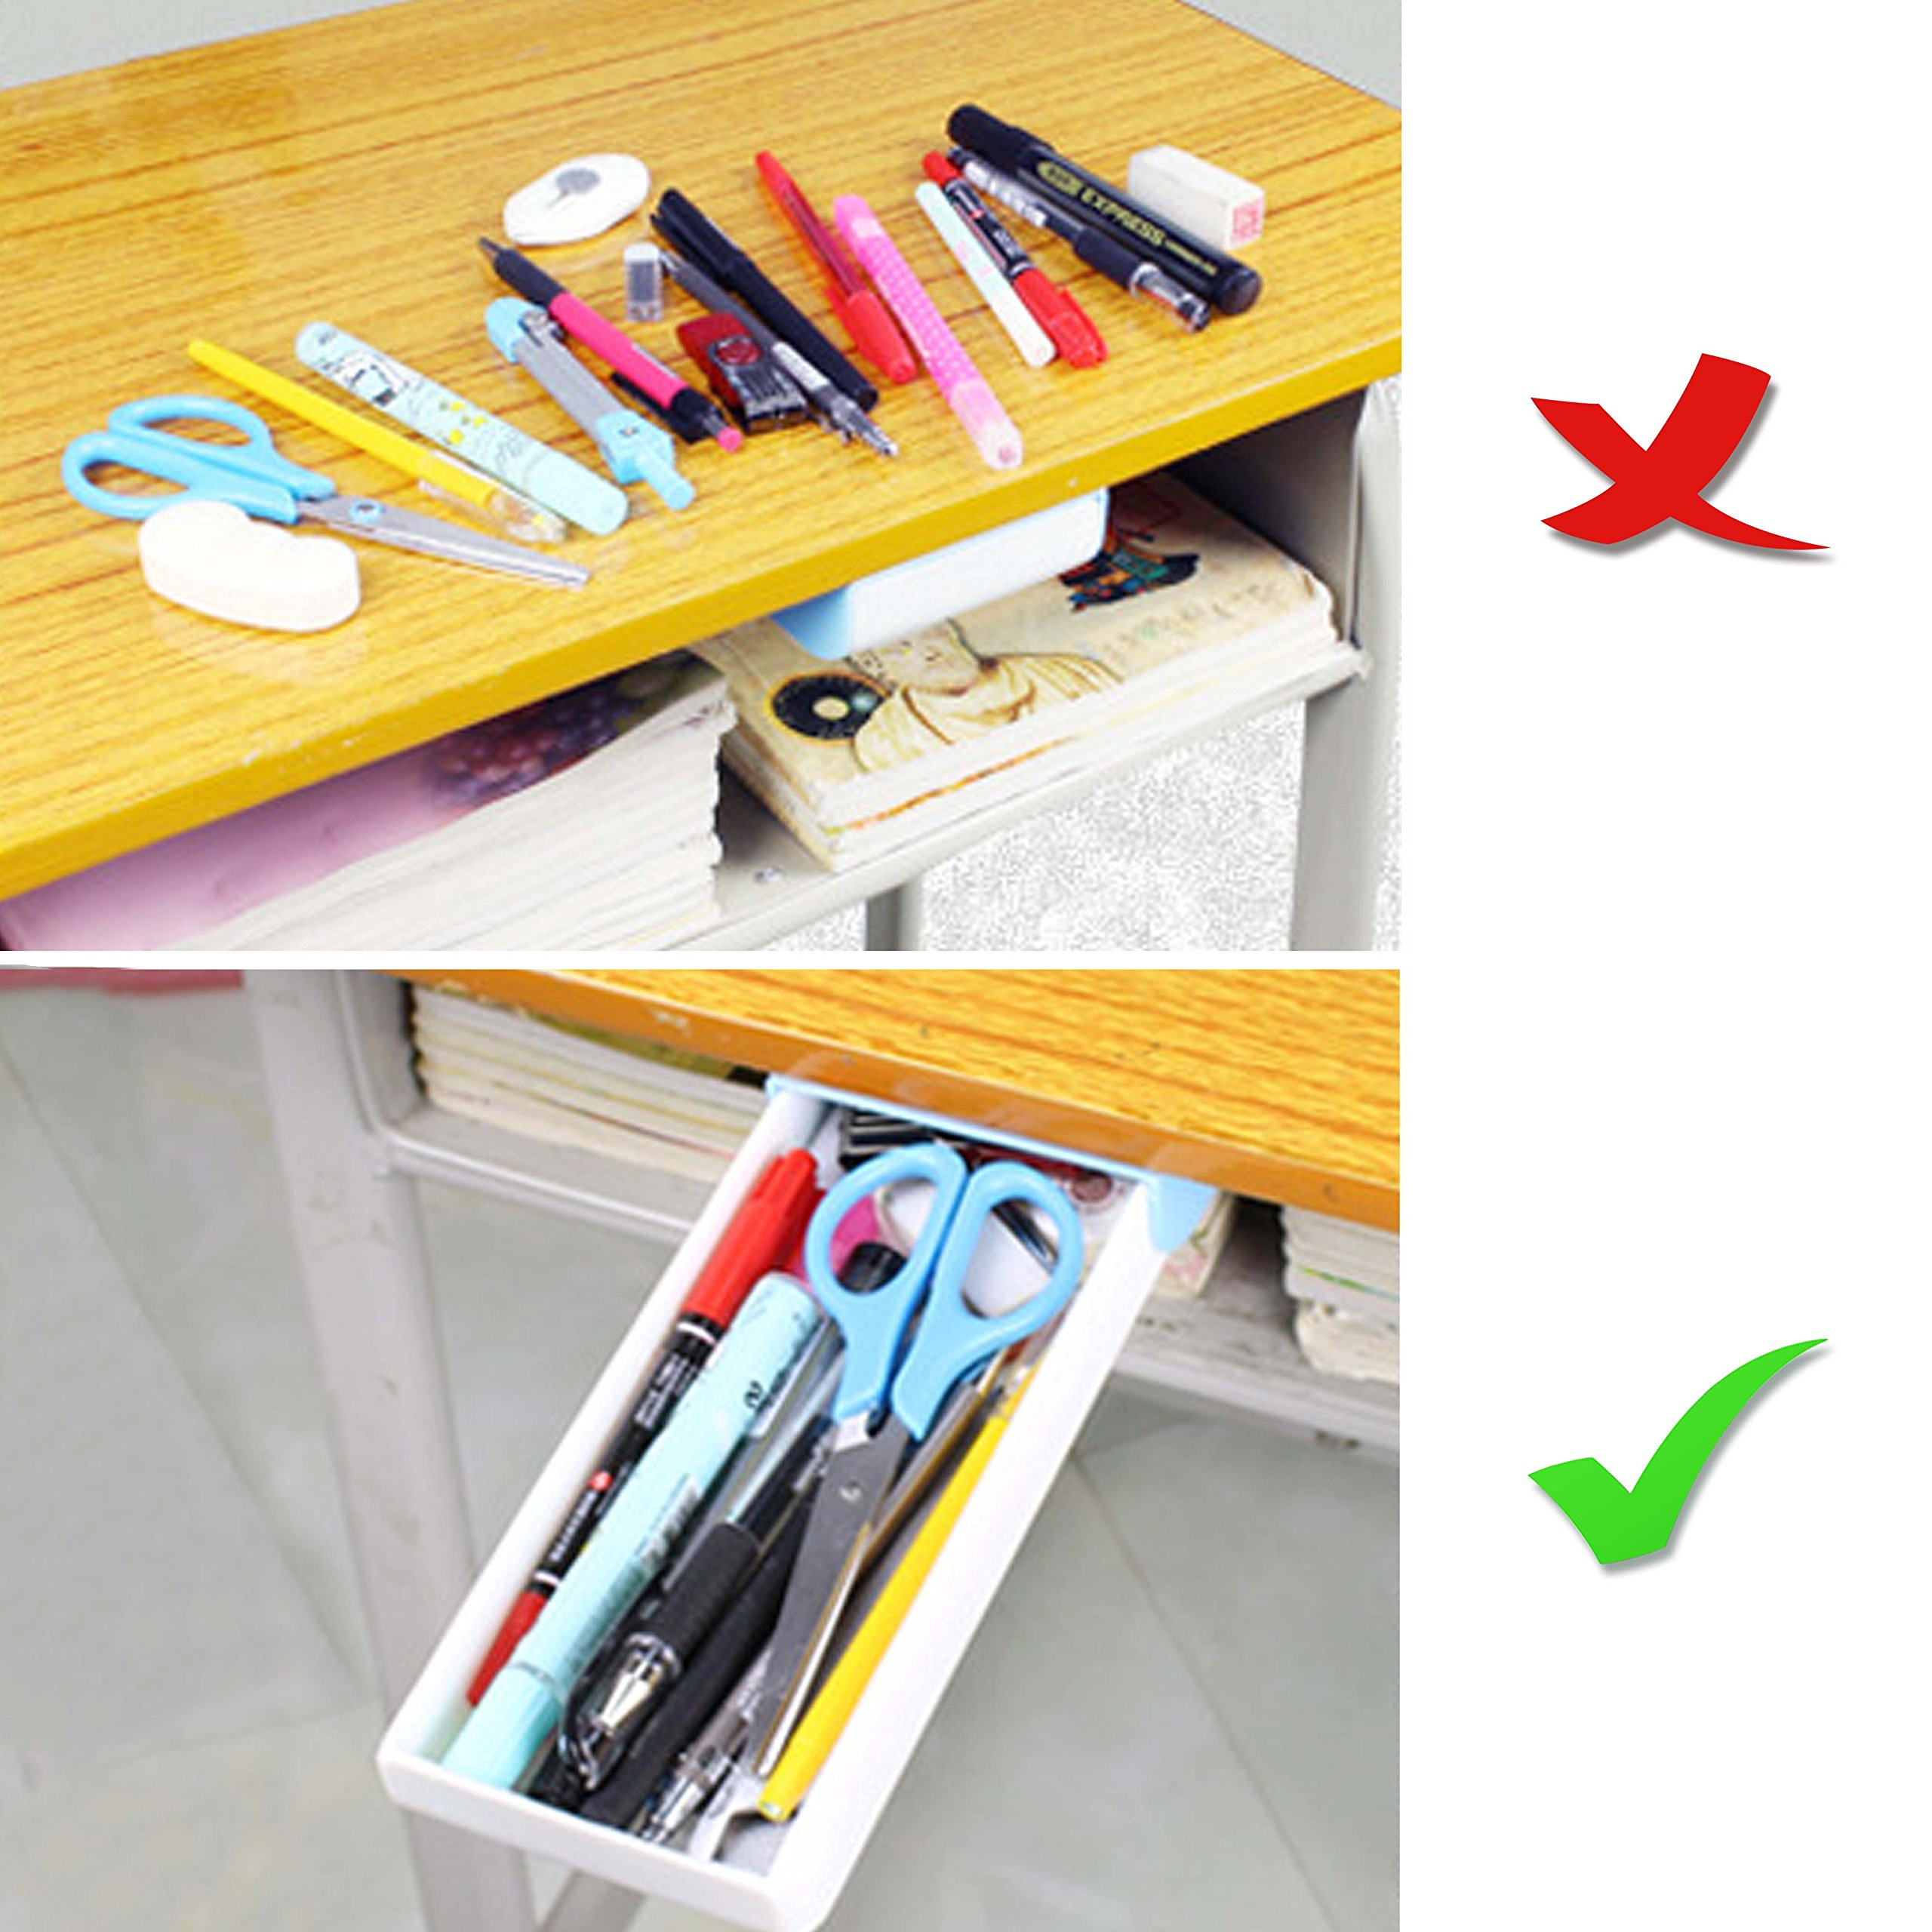 Easy Eco Life Pen Pencil Tray/ Remote Tray -- Self Stick Pop Up Under Desk Table Drawer Organizer Holder ( Best Gift For Kids, Gift Package) by Easy Eco Life (Image #6)